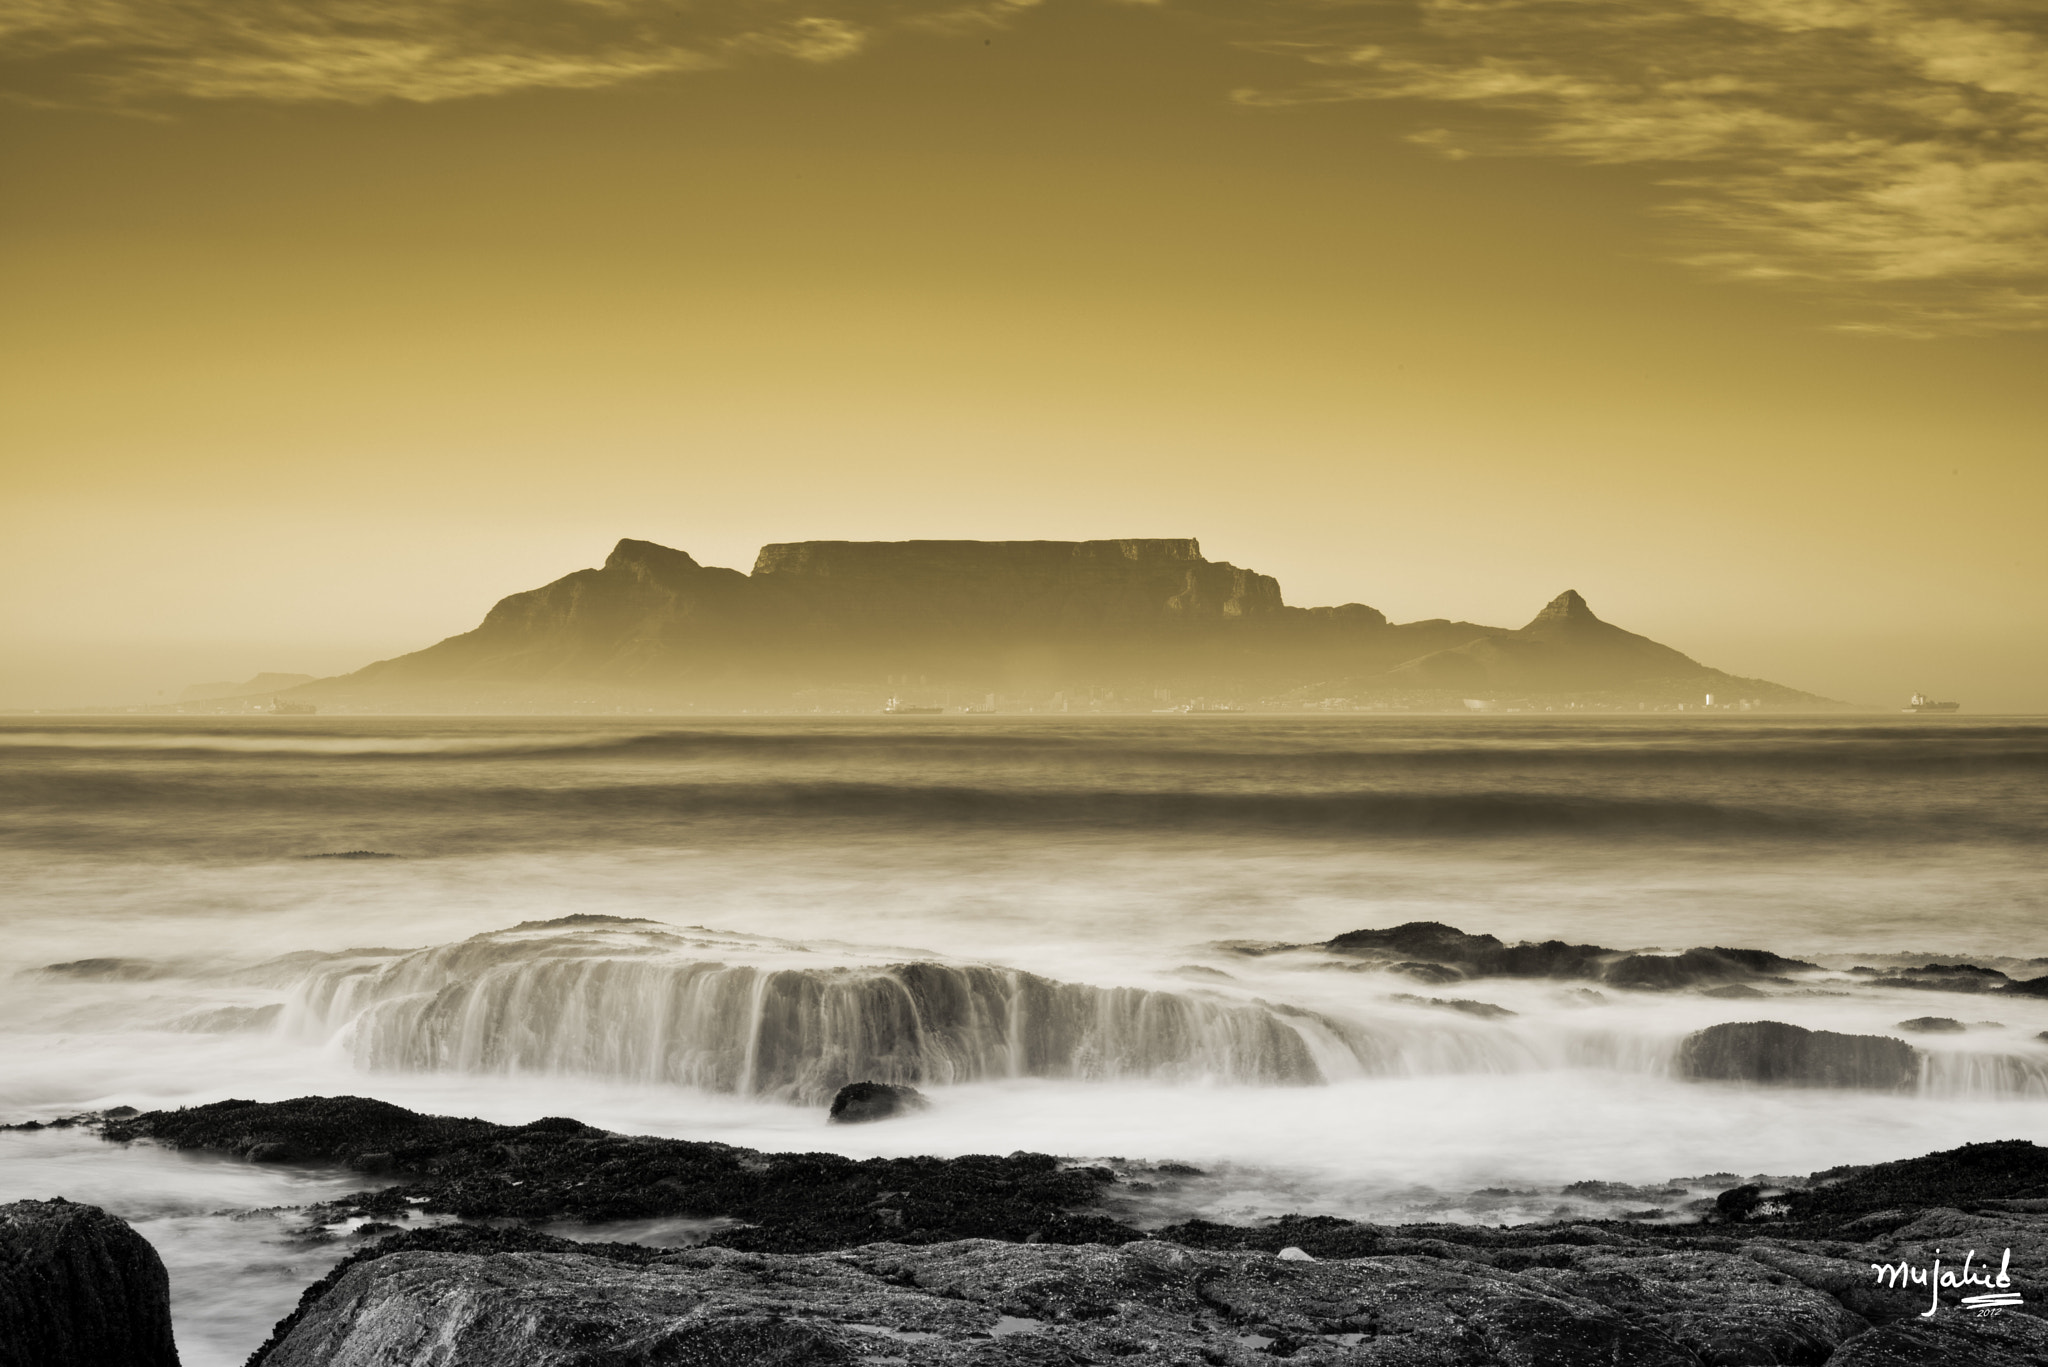 Photograph Sunrise at Table Mountain  by Mujahid UrRehman on 500px